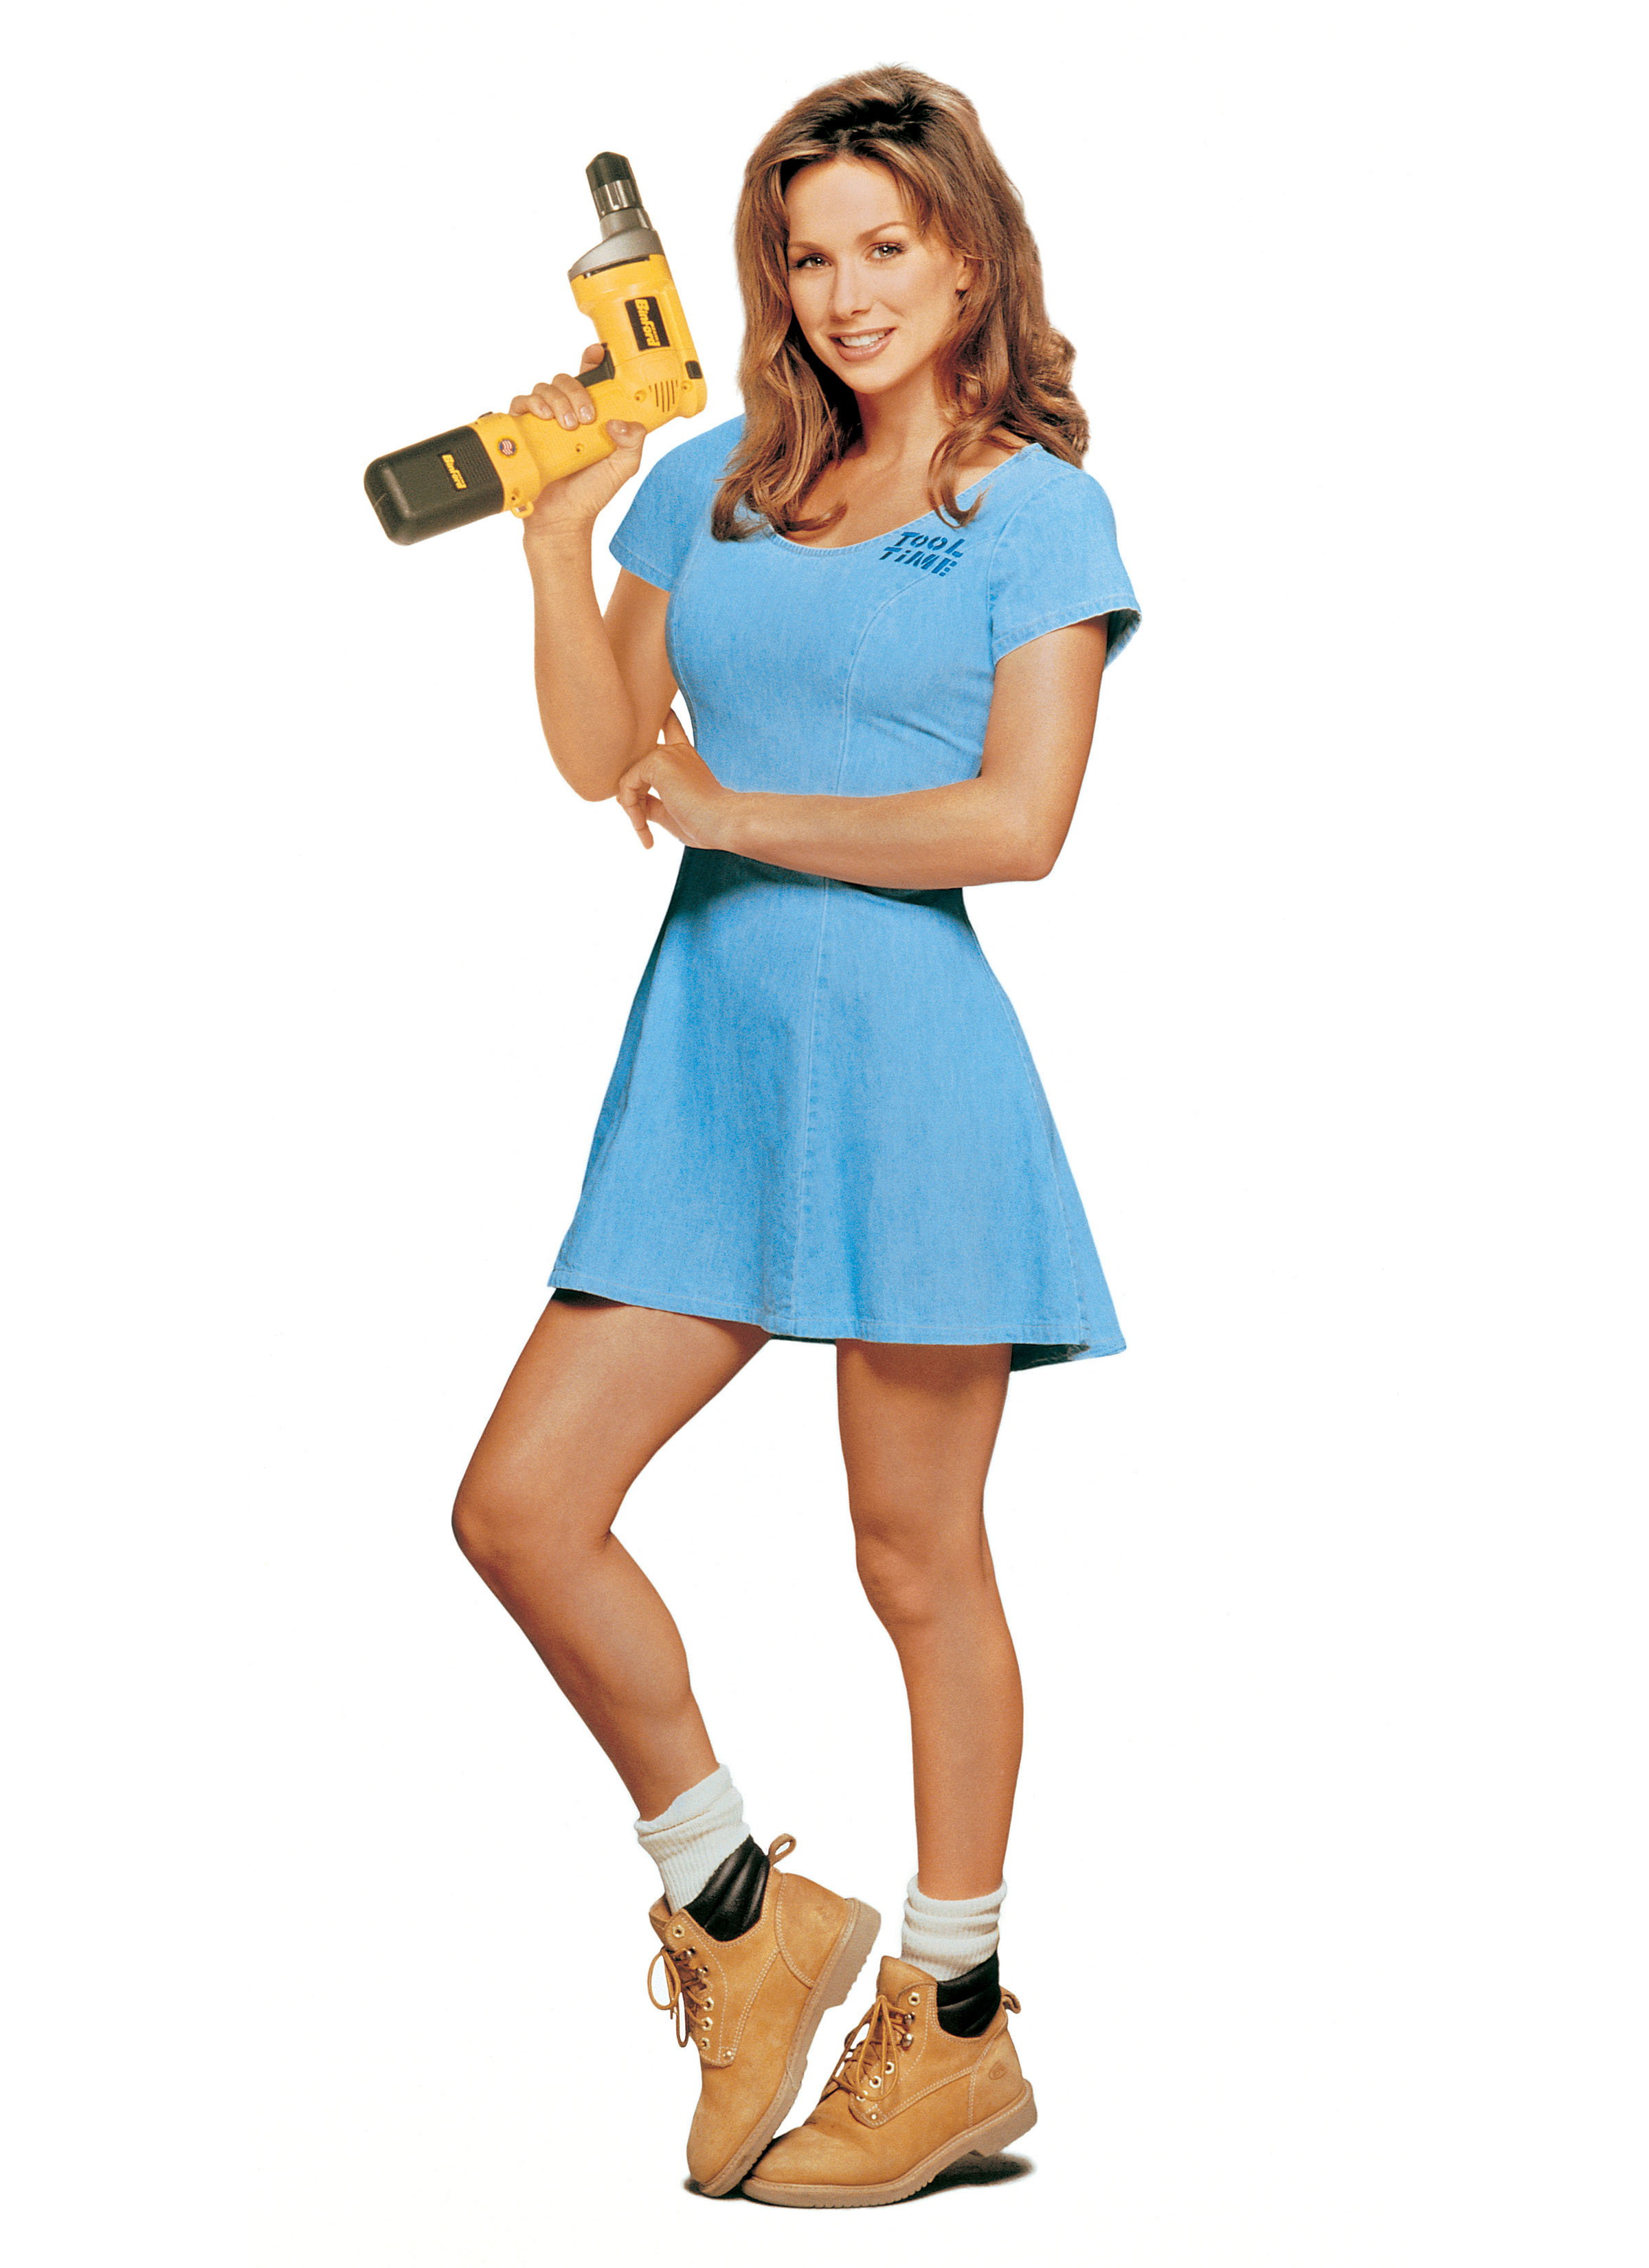 Debbe Dunning As Heidi The Tool Time Girl On Home Improvement